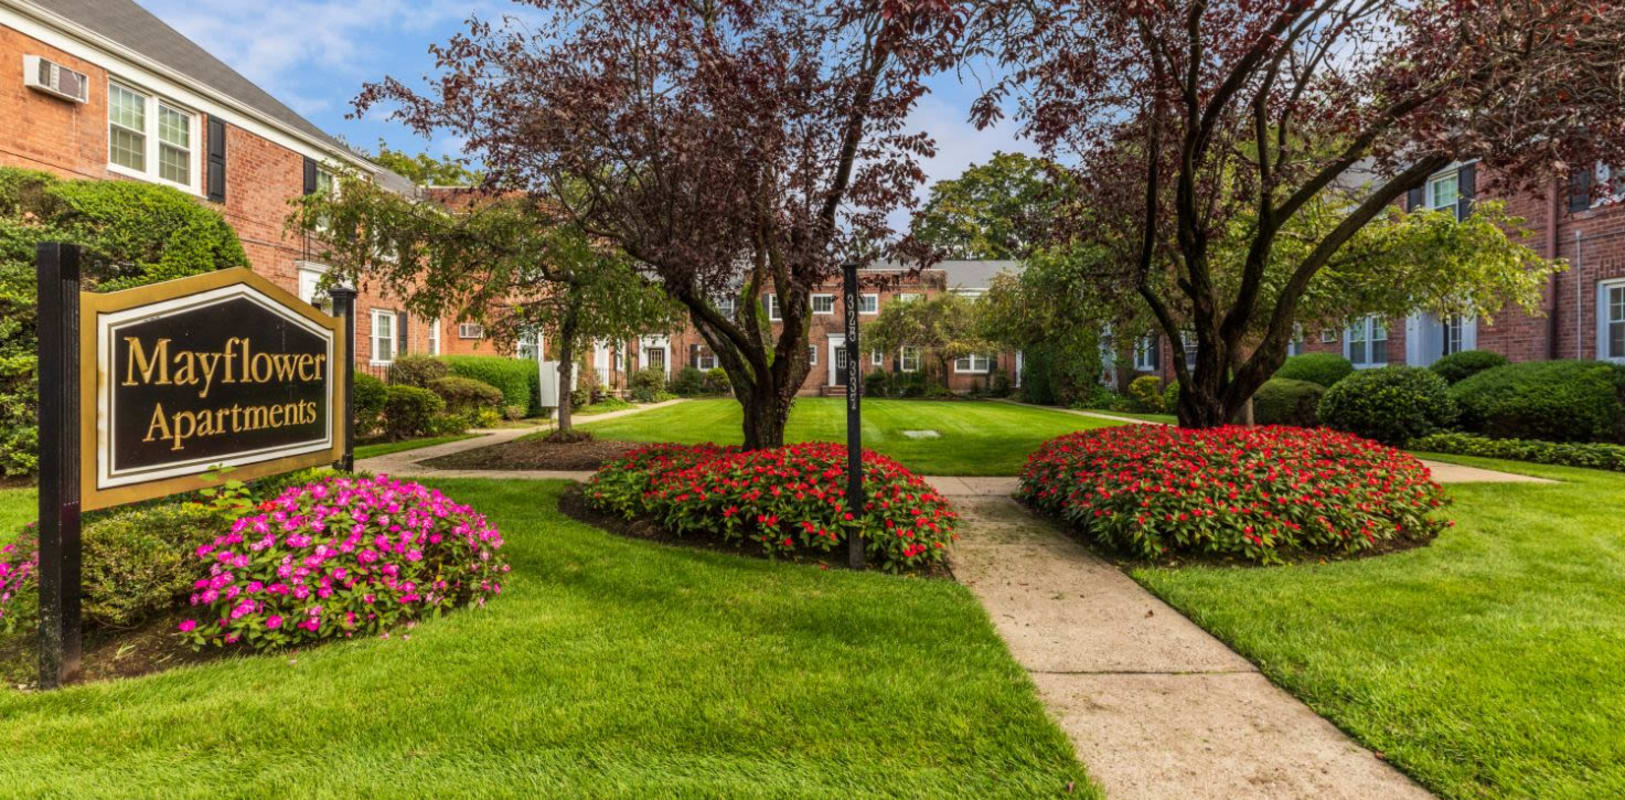 Lush landscaping at Mayflower Apartments in Ridgewood, New Jersey